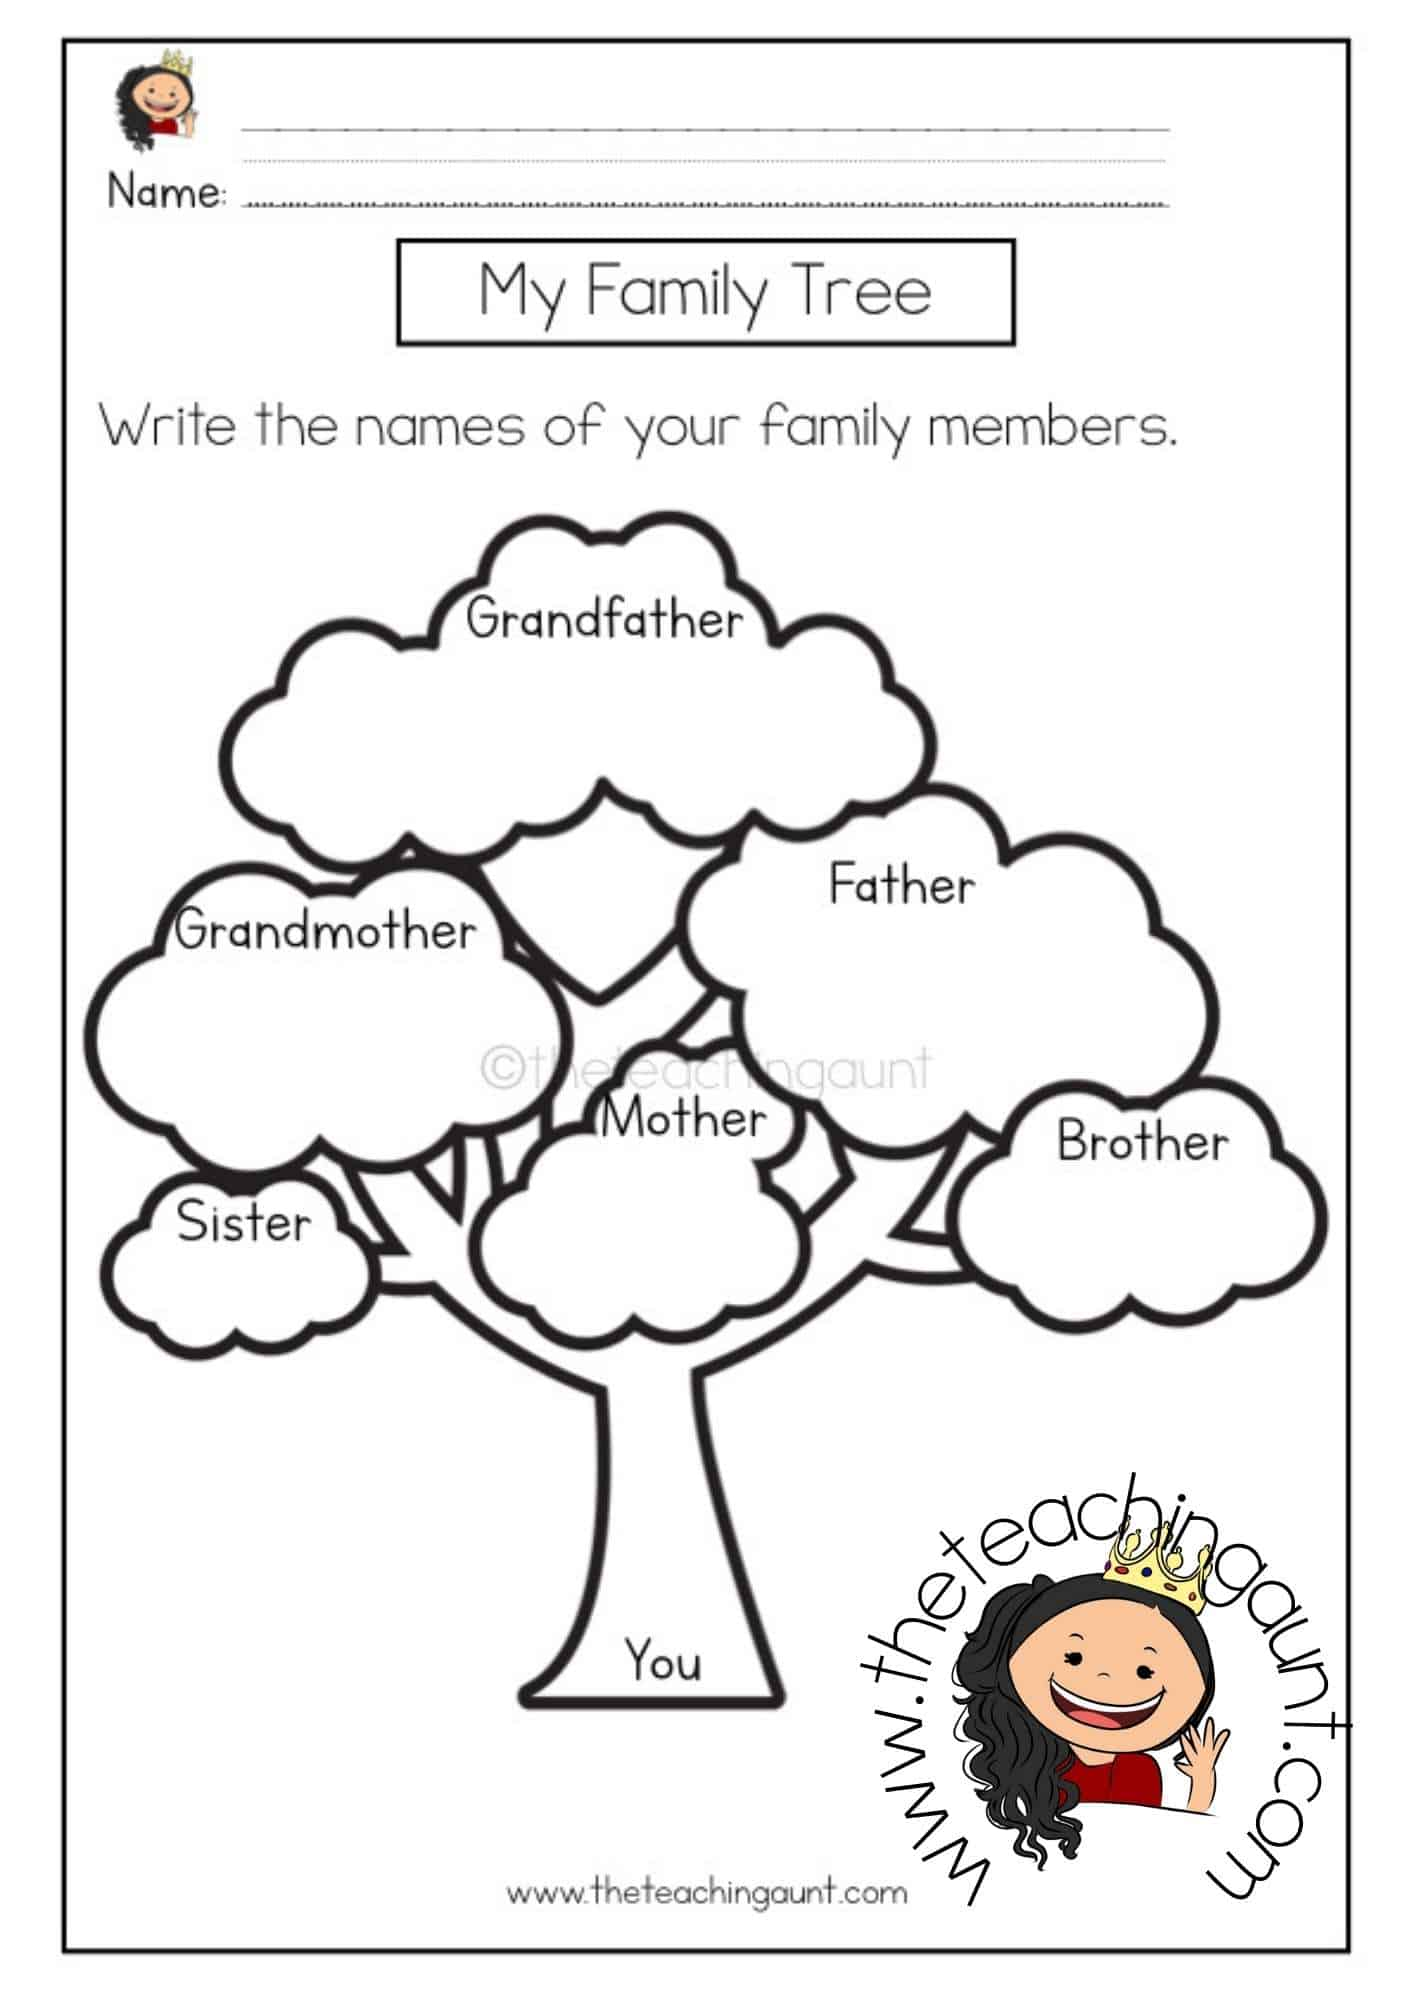 Free Family Tree Worksheet from The Teaching Aunt